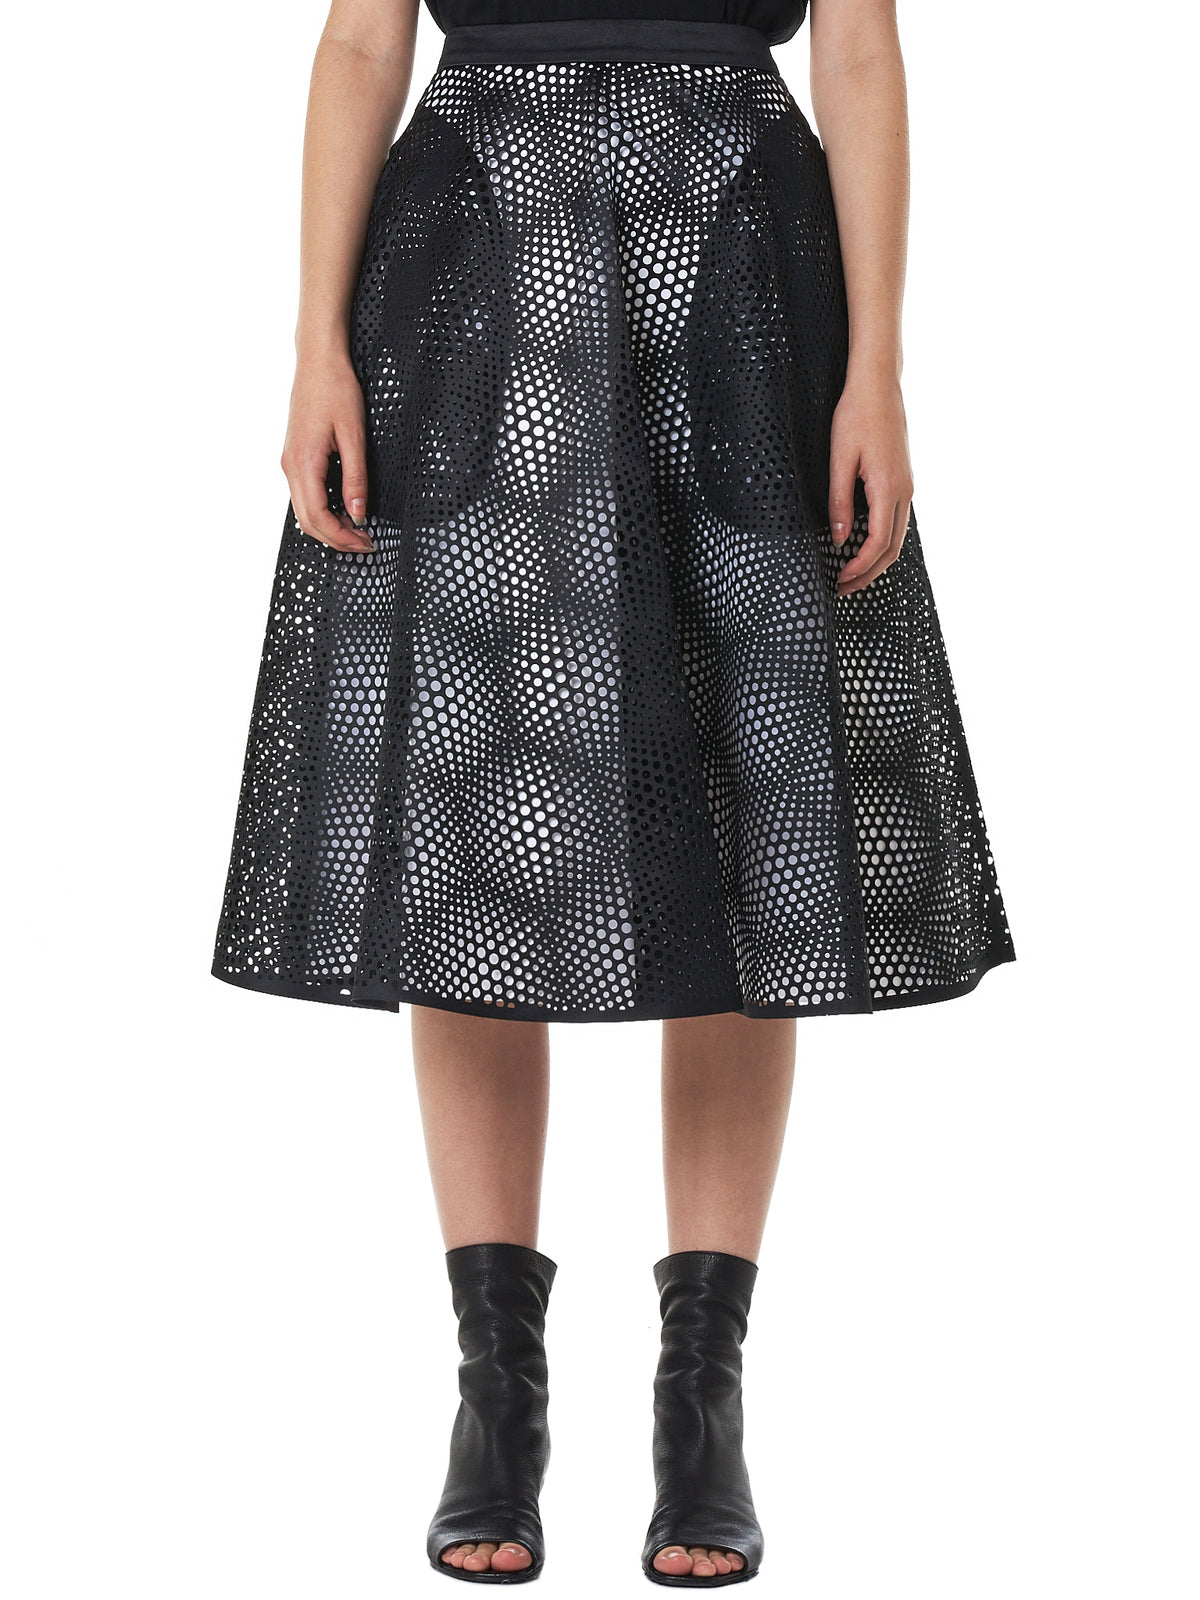 Triple Layer 'Illusion' Skirt (1938-BLACK-WHITE)